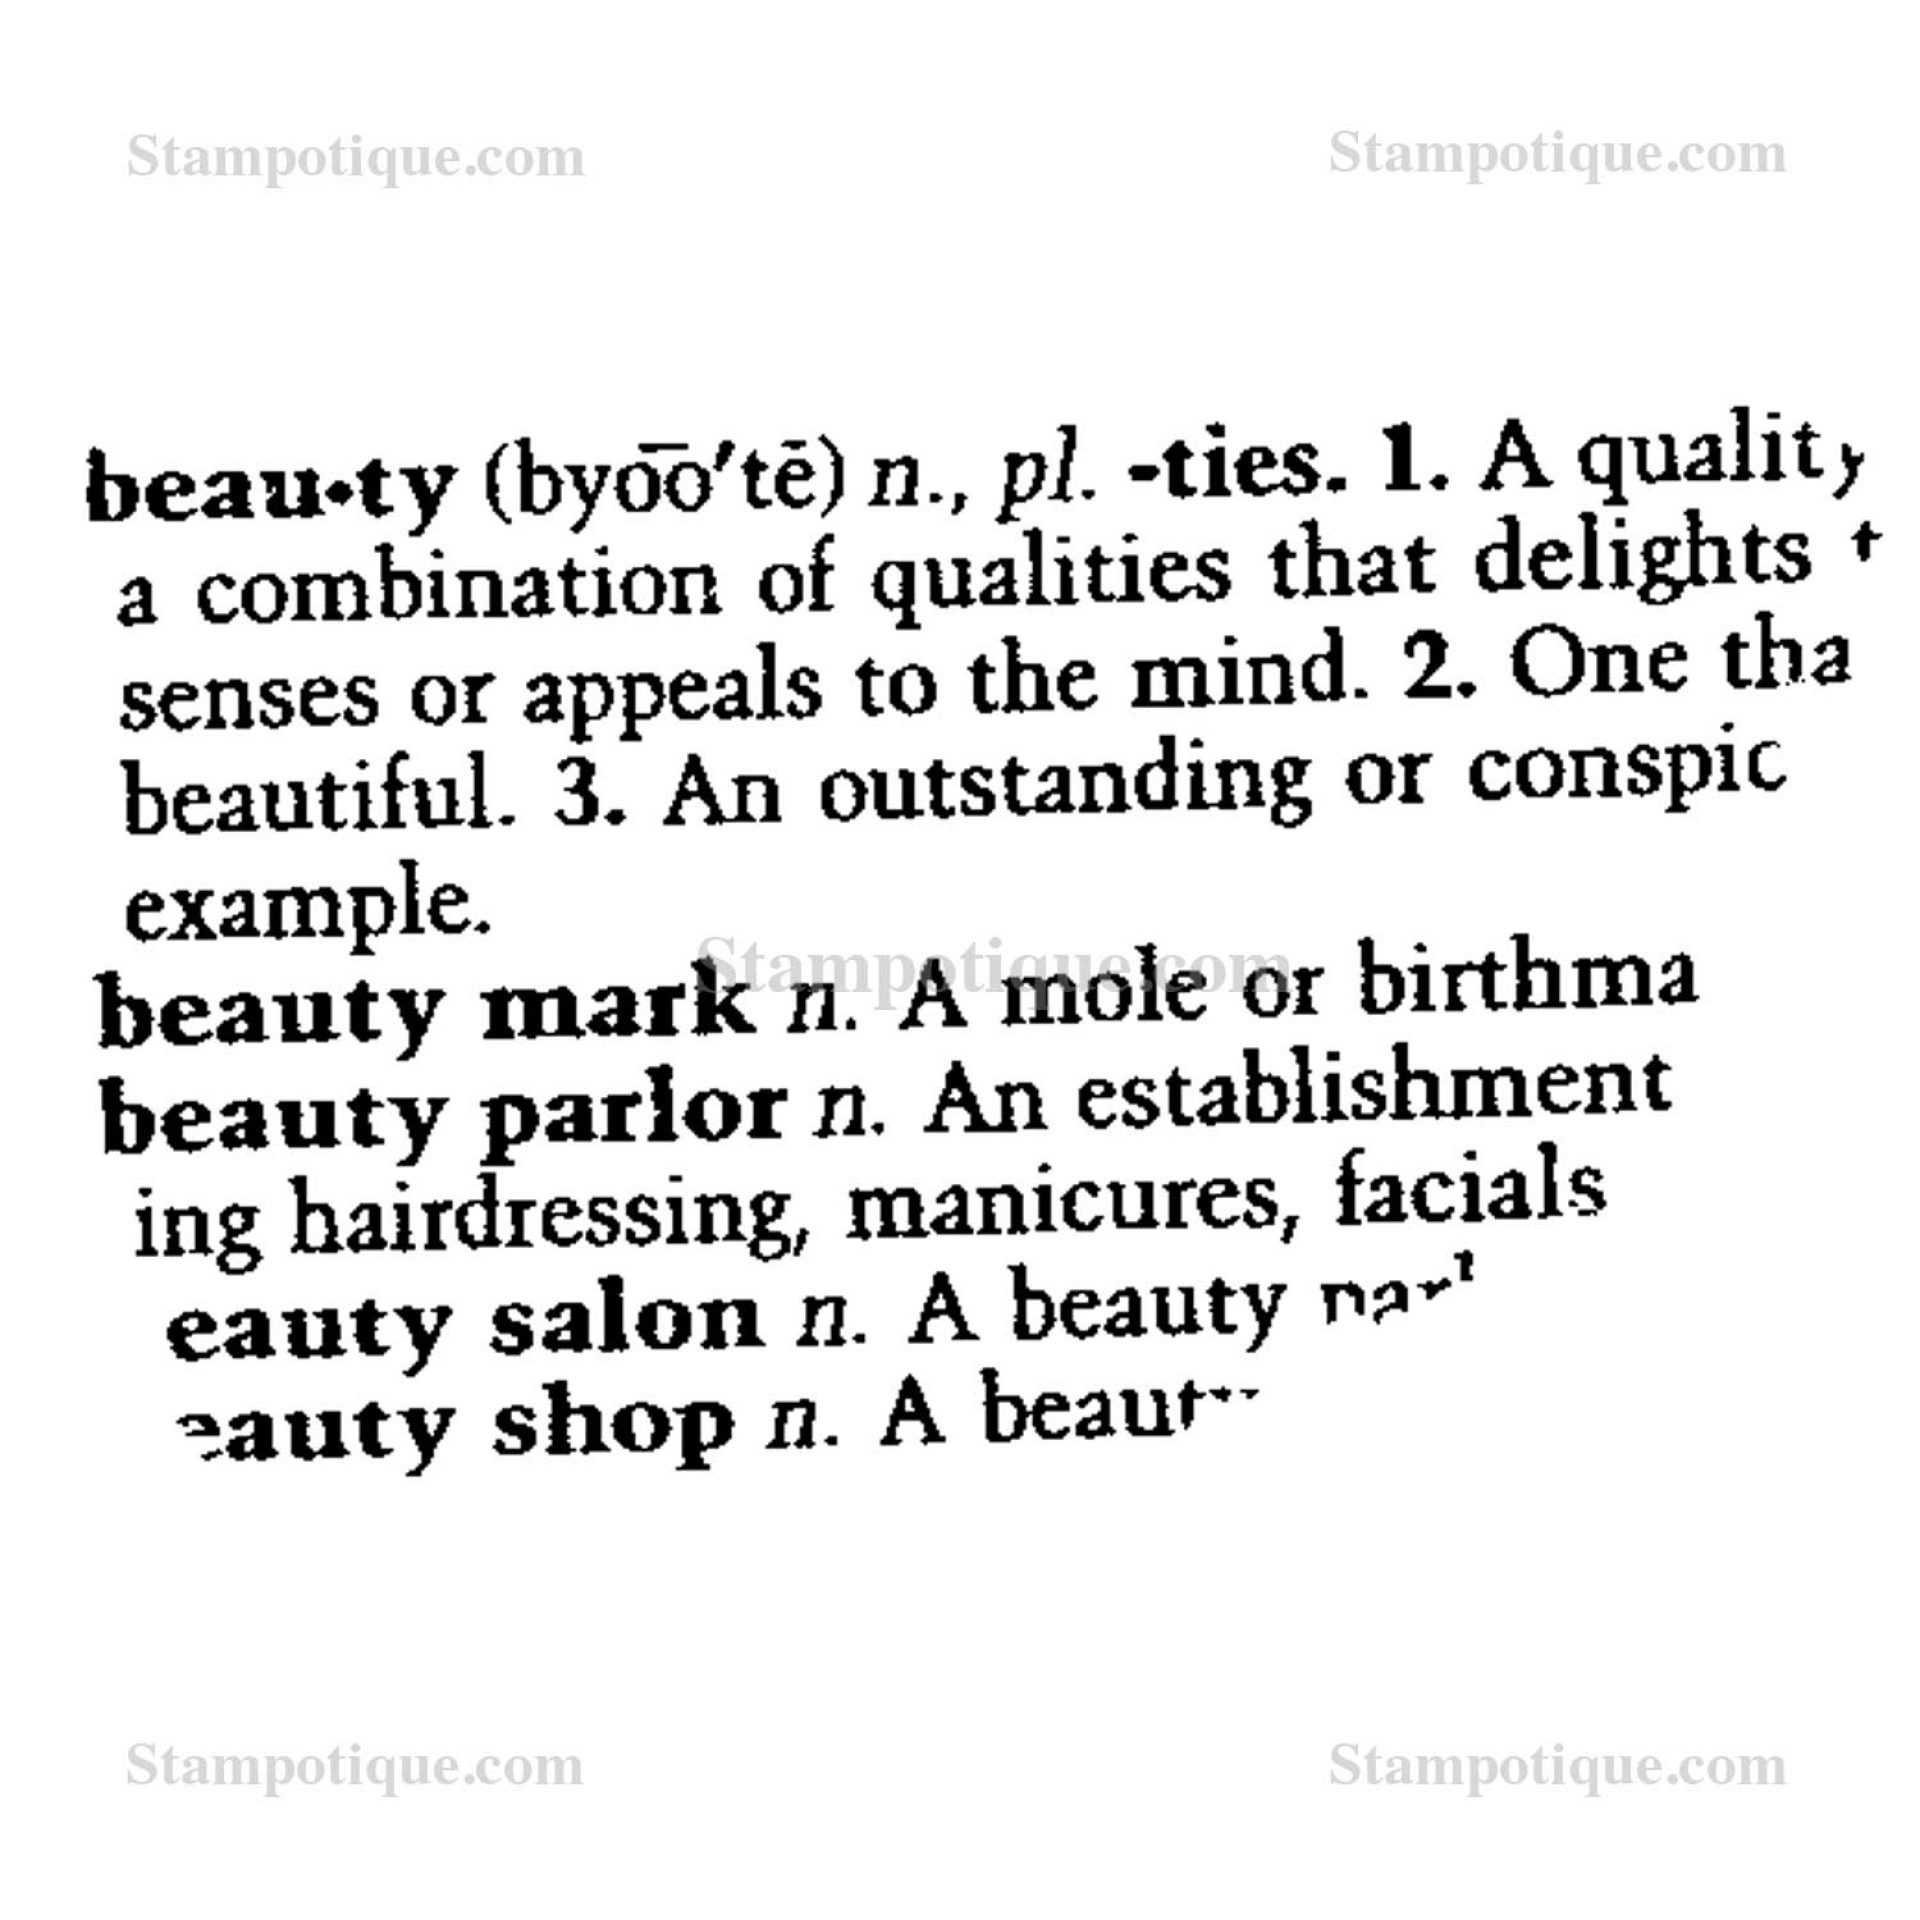 005 Essay Example 7070p Beauty Definition What Top Is Short Inner Real 1920